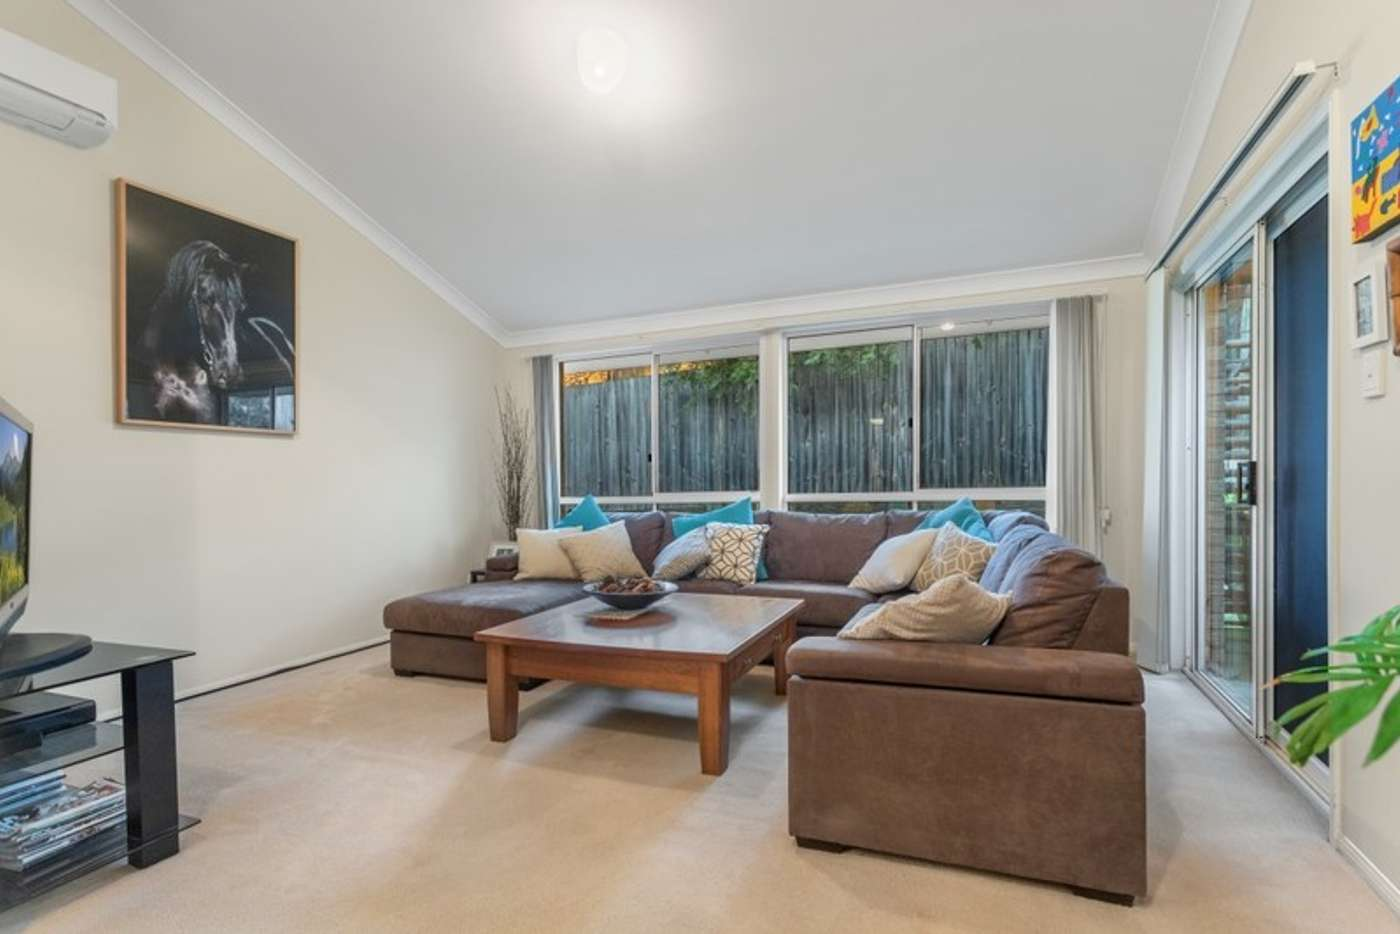 Fifth view of Homely house listing, 36 Trevally Cresent, Manly West QLD 4179